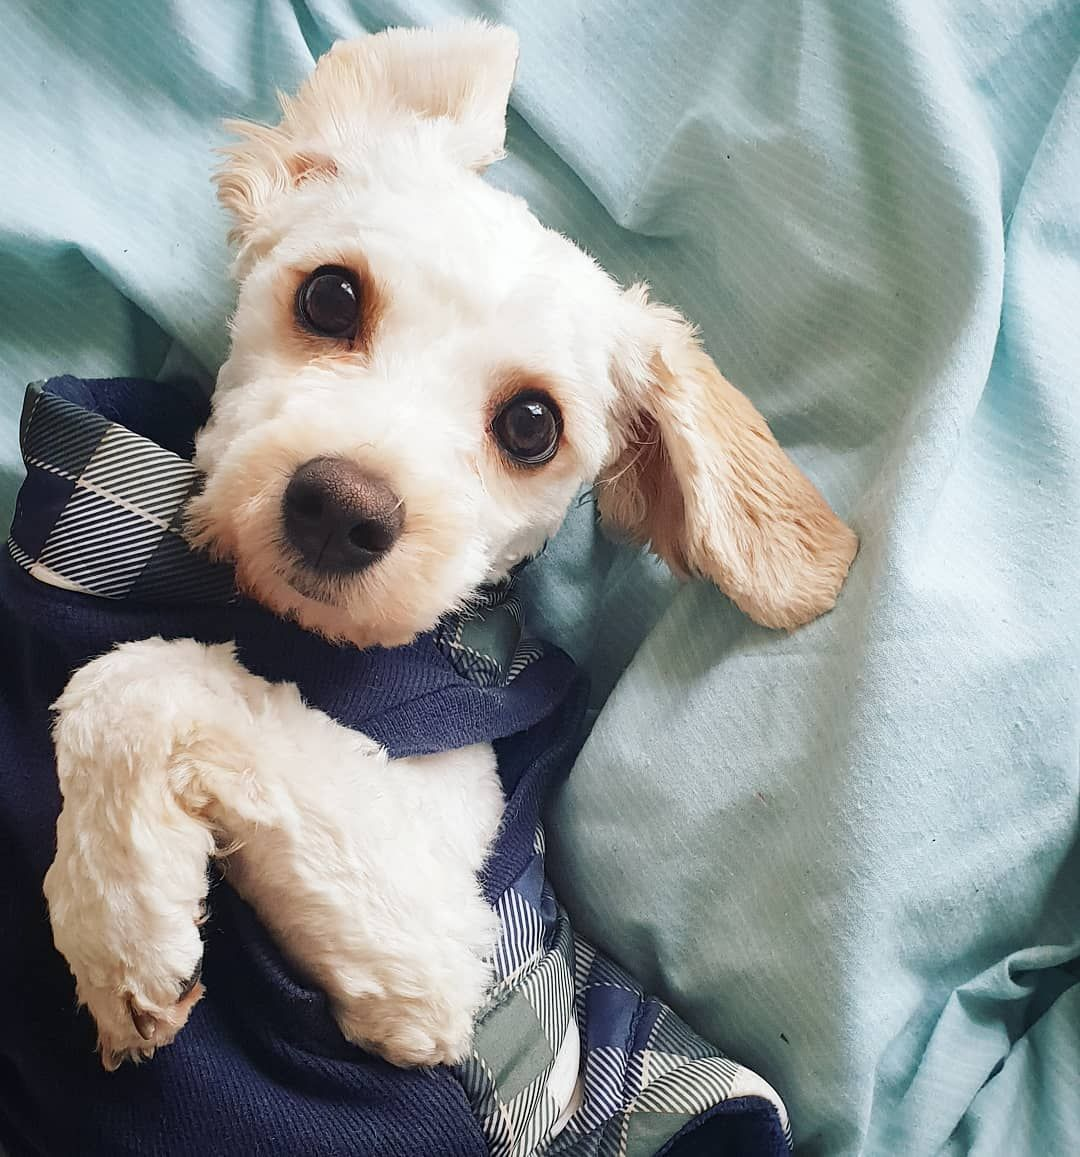 Cute puppy in a dapper sweater. Puppy dog eyes, Dog